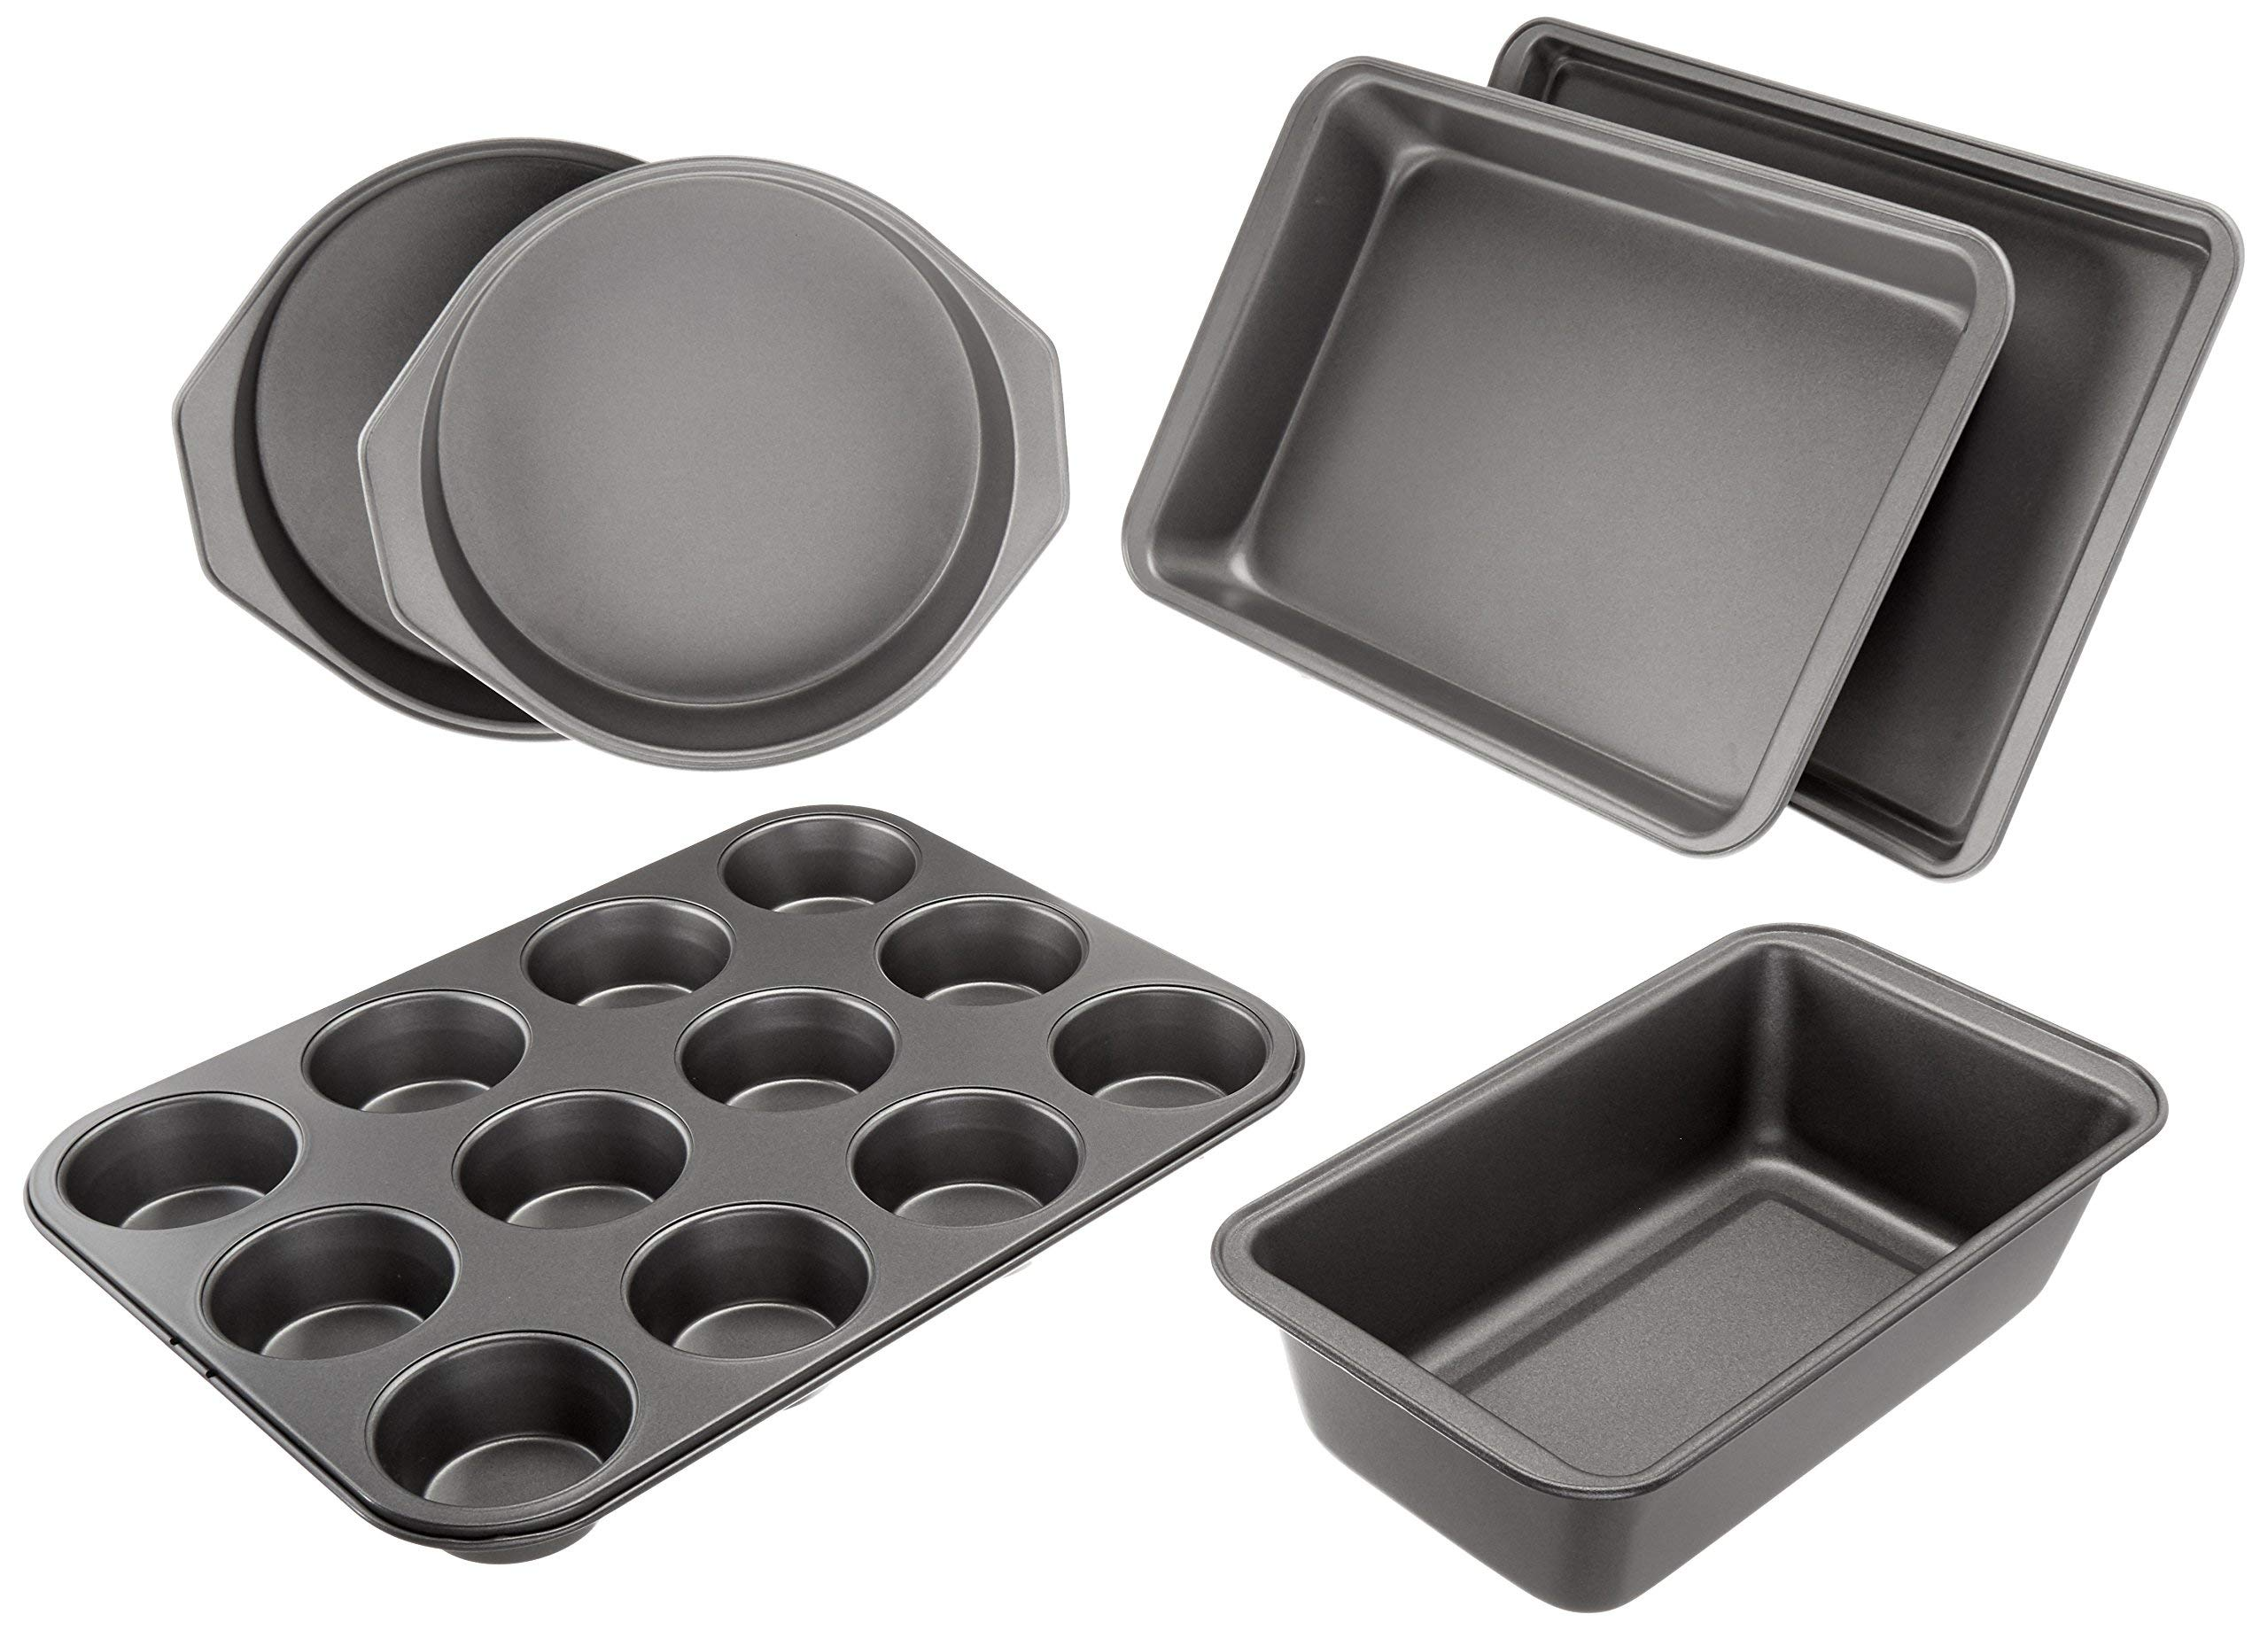 AmazonBasics 6-Piece Nonstick Bakeware Set (Renewed)